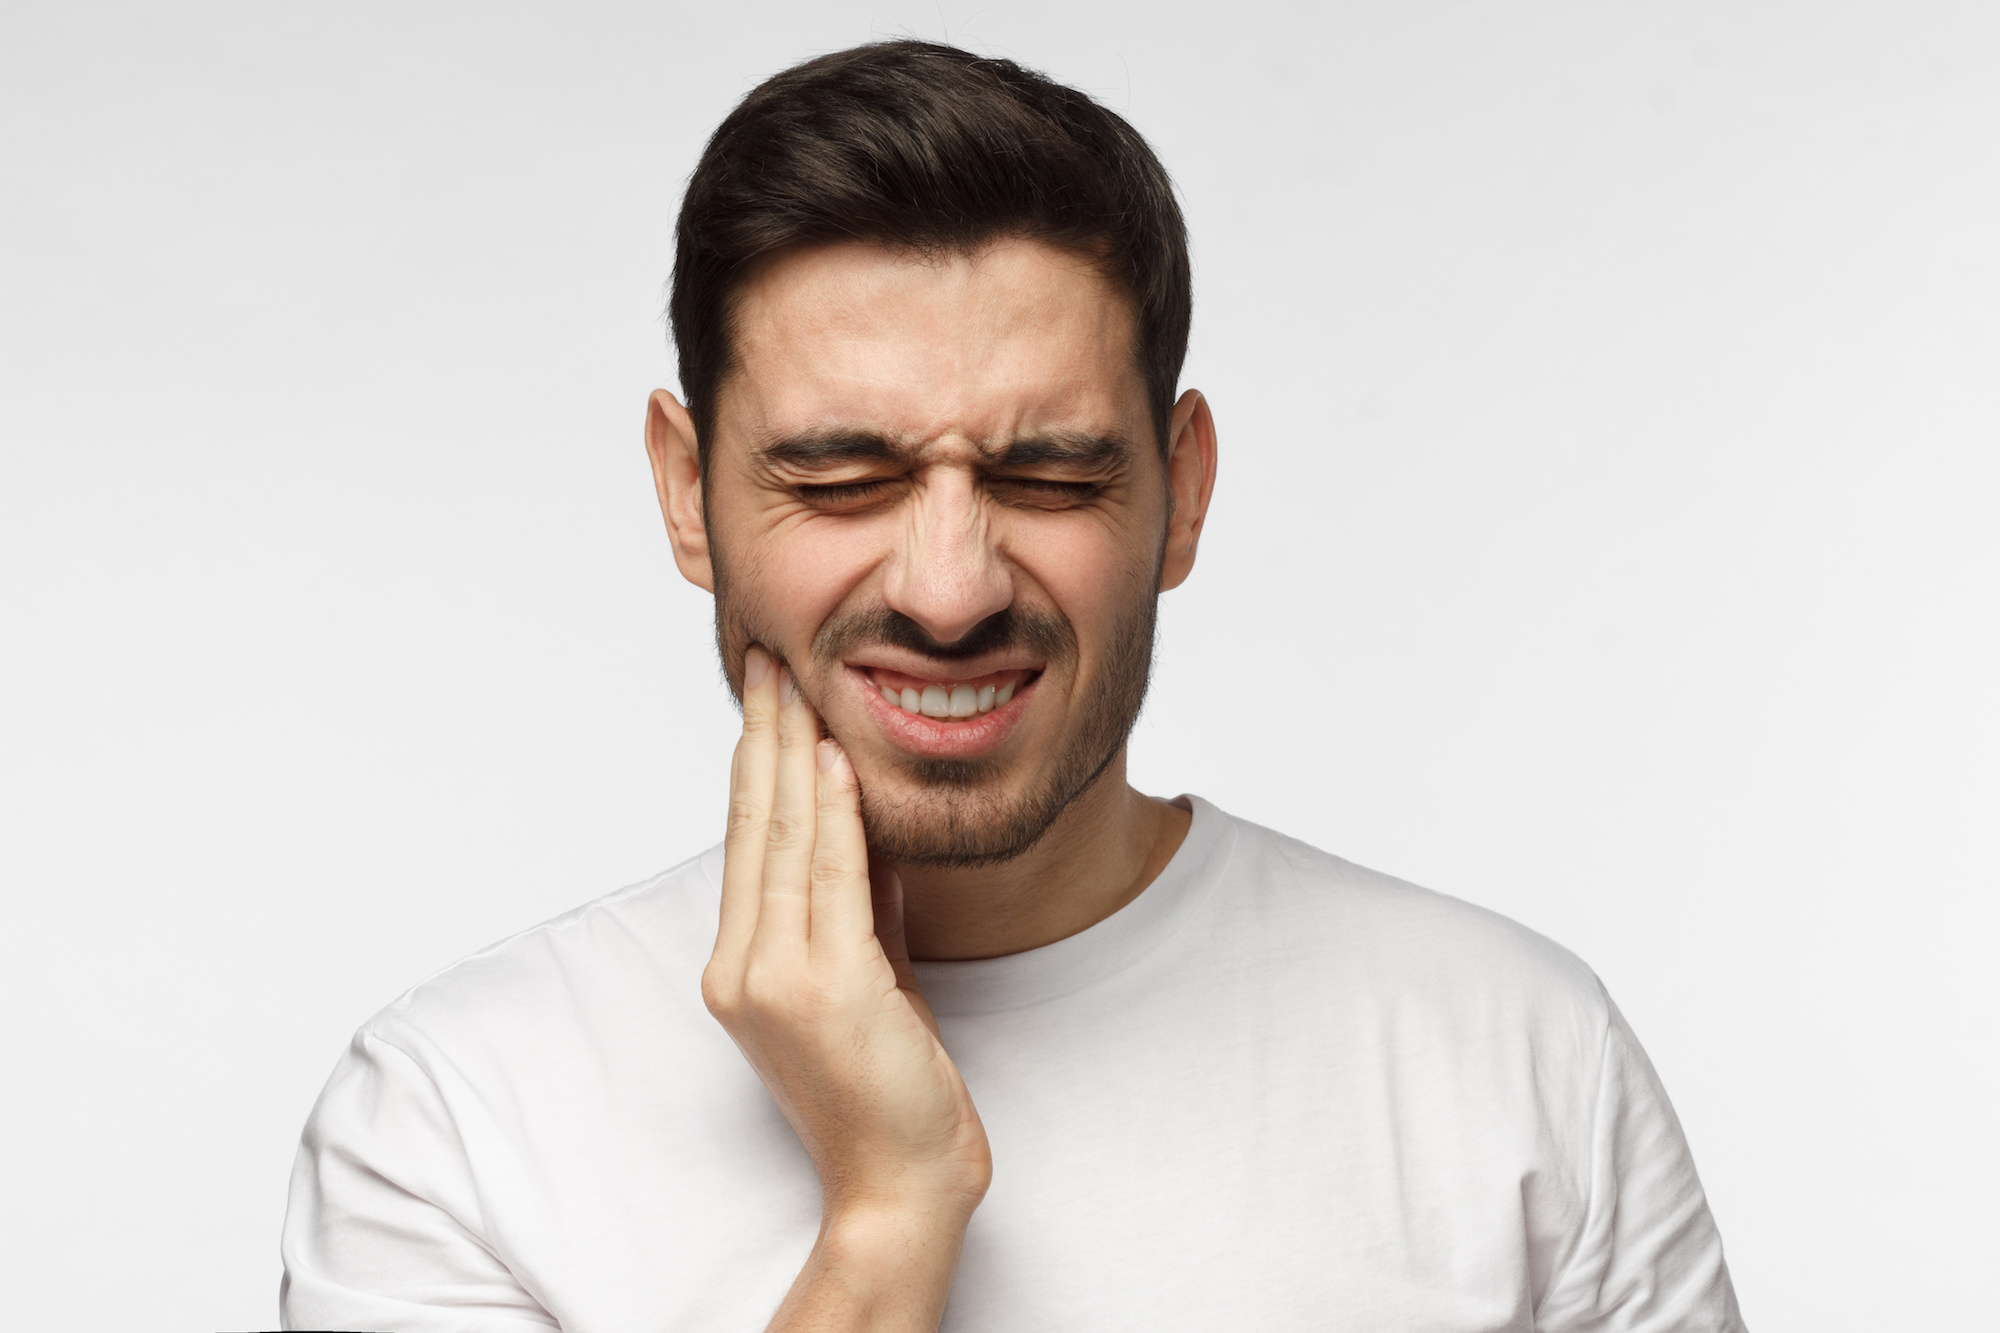 If you've recently had a root canal in Shirley, or you think you may need a root canal from Nashoba Valley Dental, you may be wondering what type of pain to expect after your treatment. Is pain normal? Should you be worried if your tooth hurts after a root canal? Here's what you need to know.